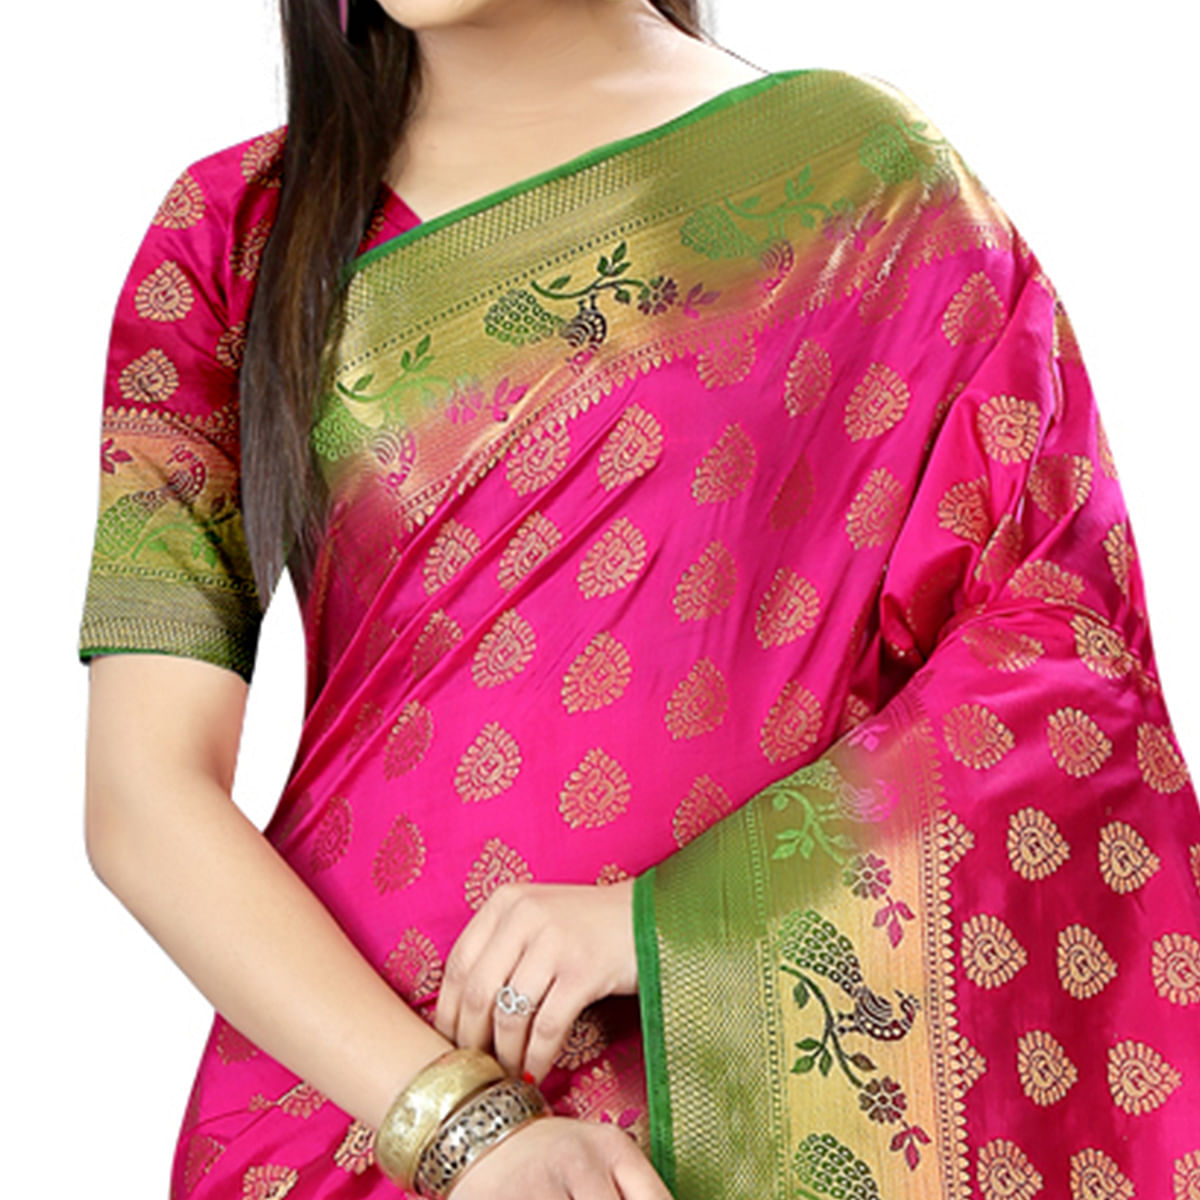 Gorgeous Rani Pink Colored Festive Wear Woven Silk Saree